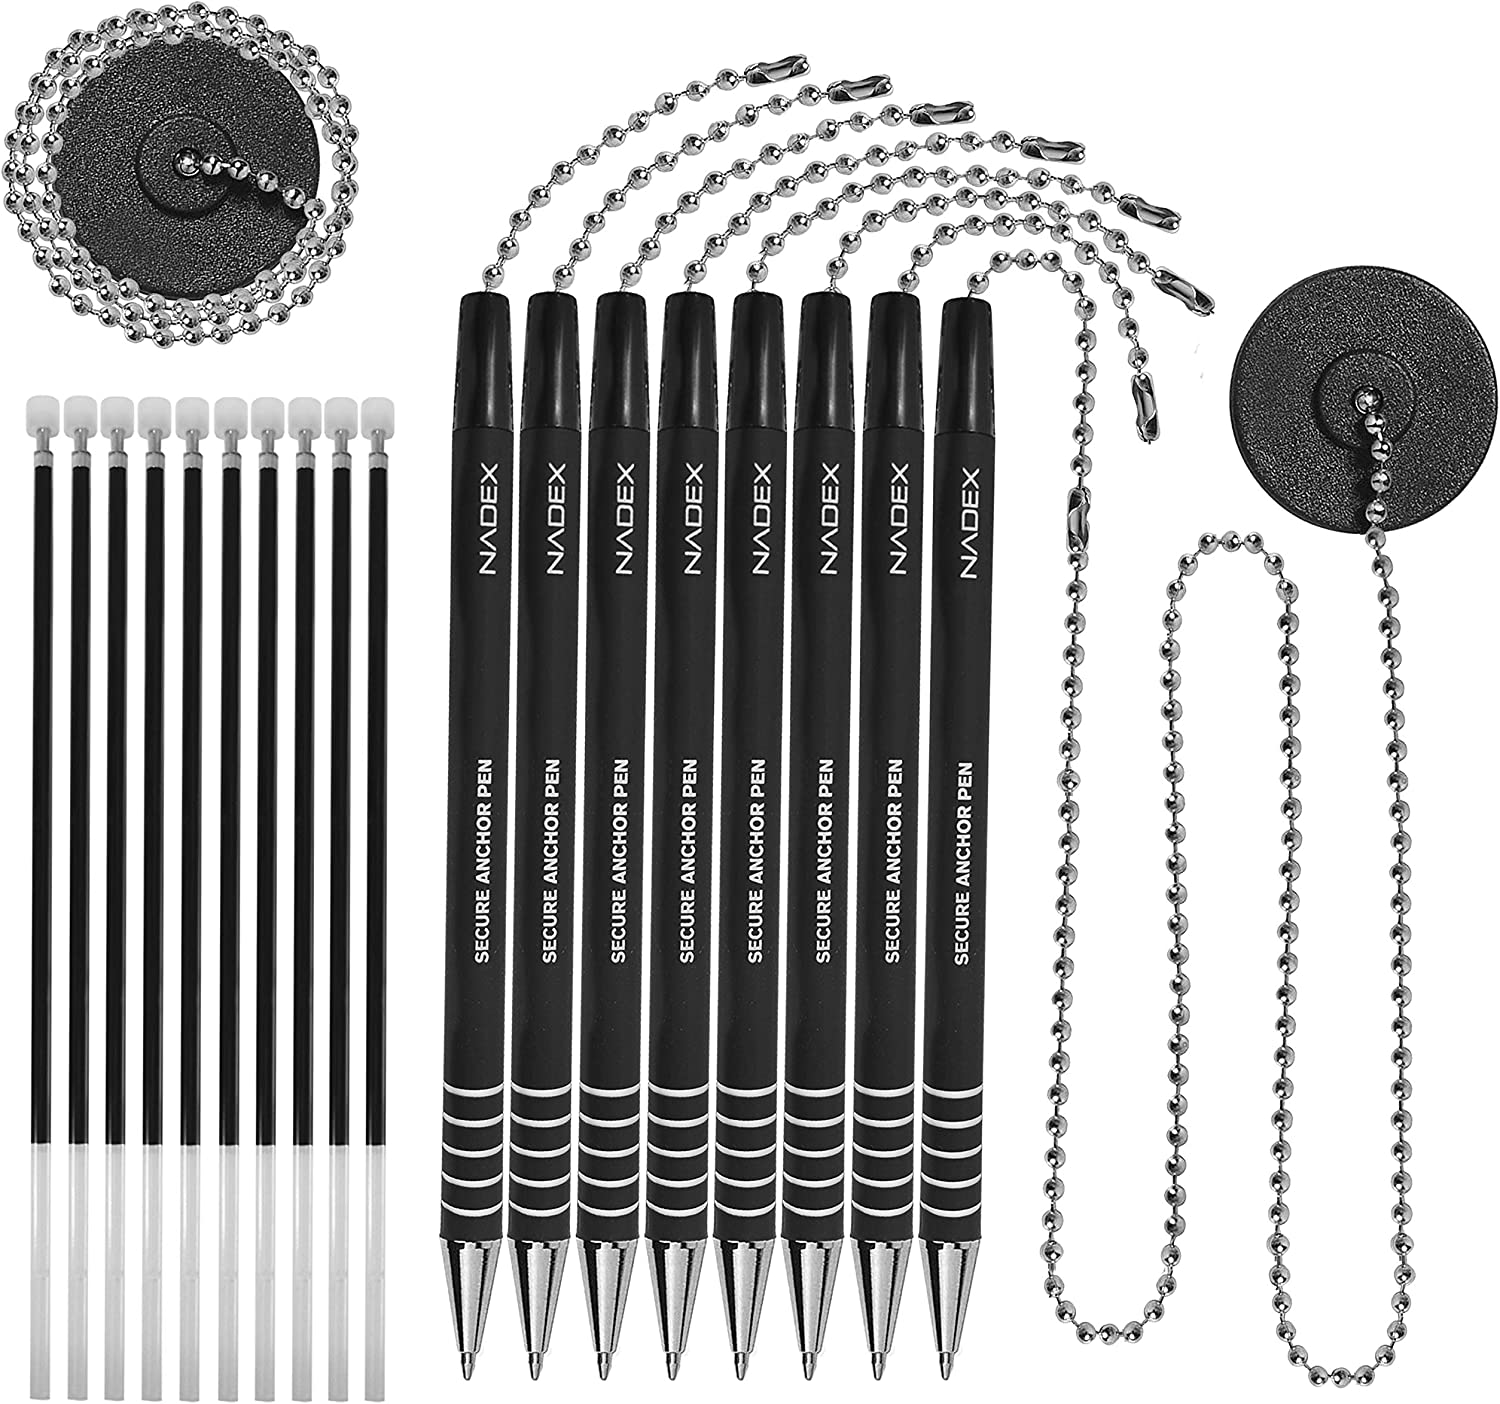 1 Adhesive Mount and 5 Refills Nadex Ball and Chain Security Pen Set 4 Pens Black